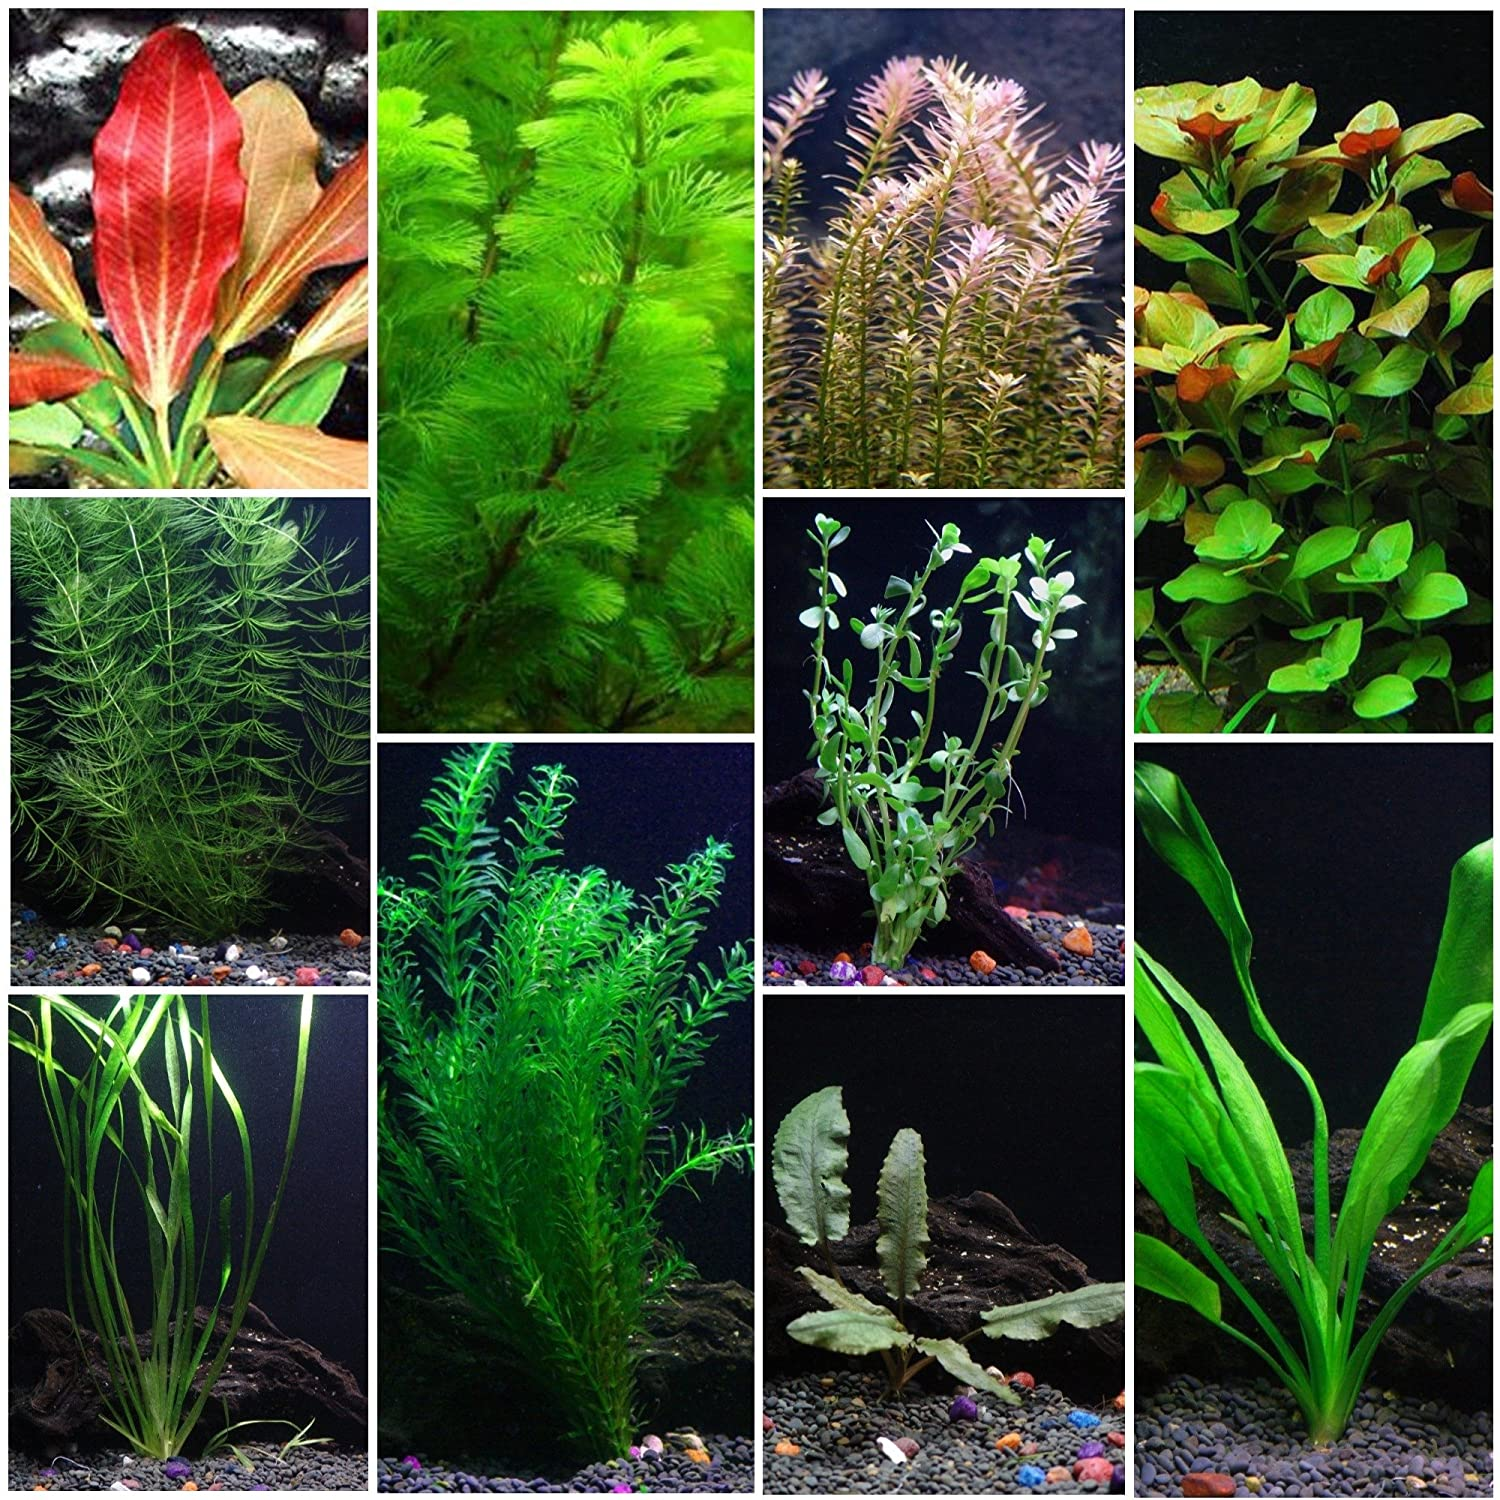 10 Species Live Aquarium Plants Package - Anacharis, Swords, Vallisneria and more! Aquarium Plants Discounts